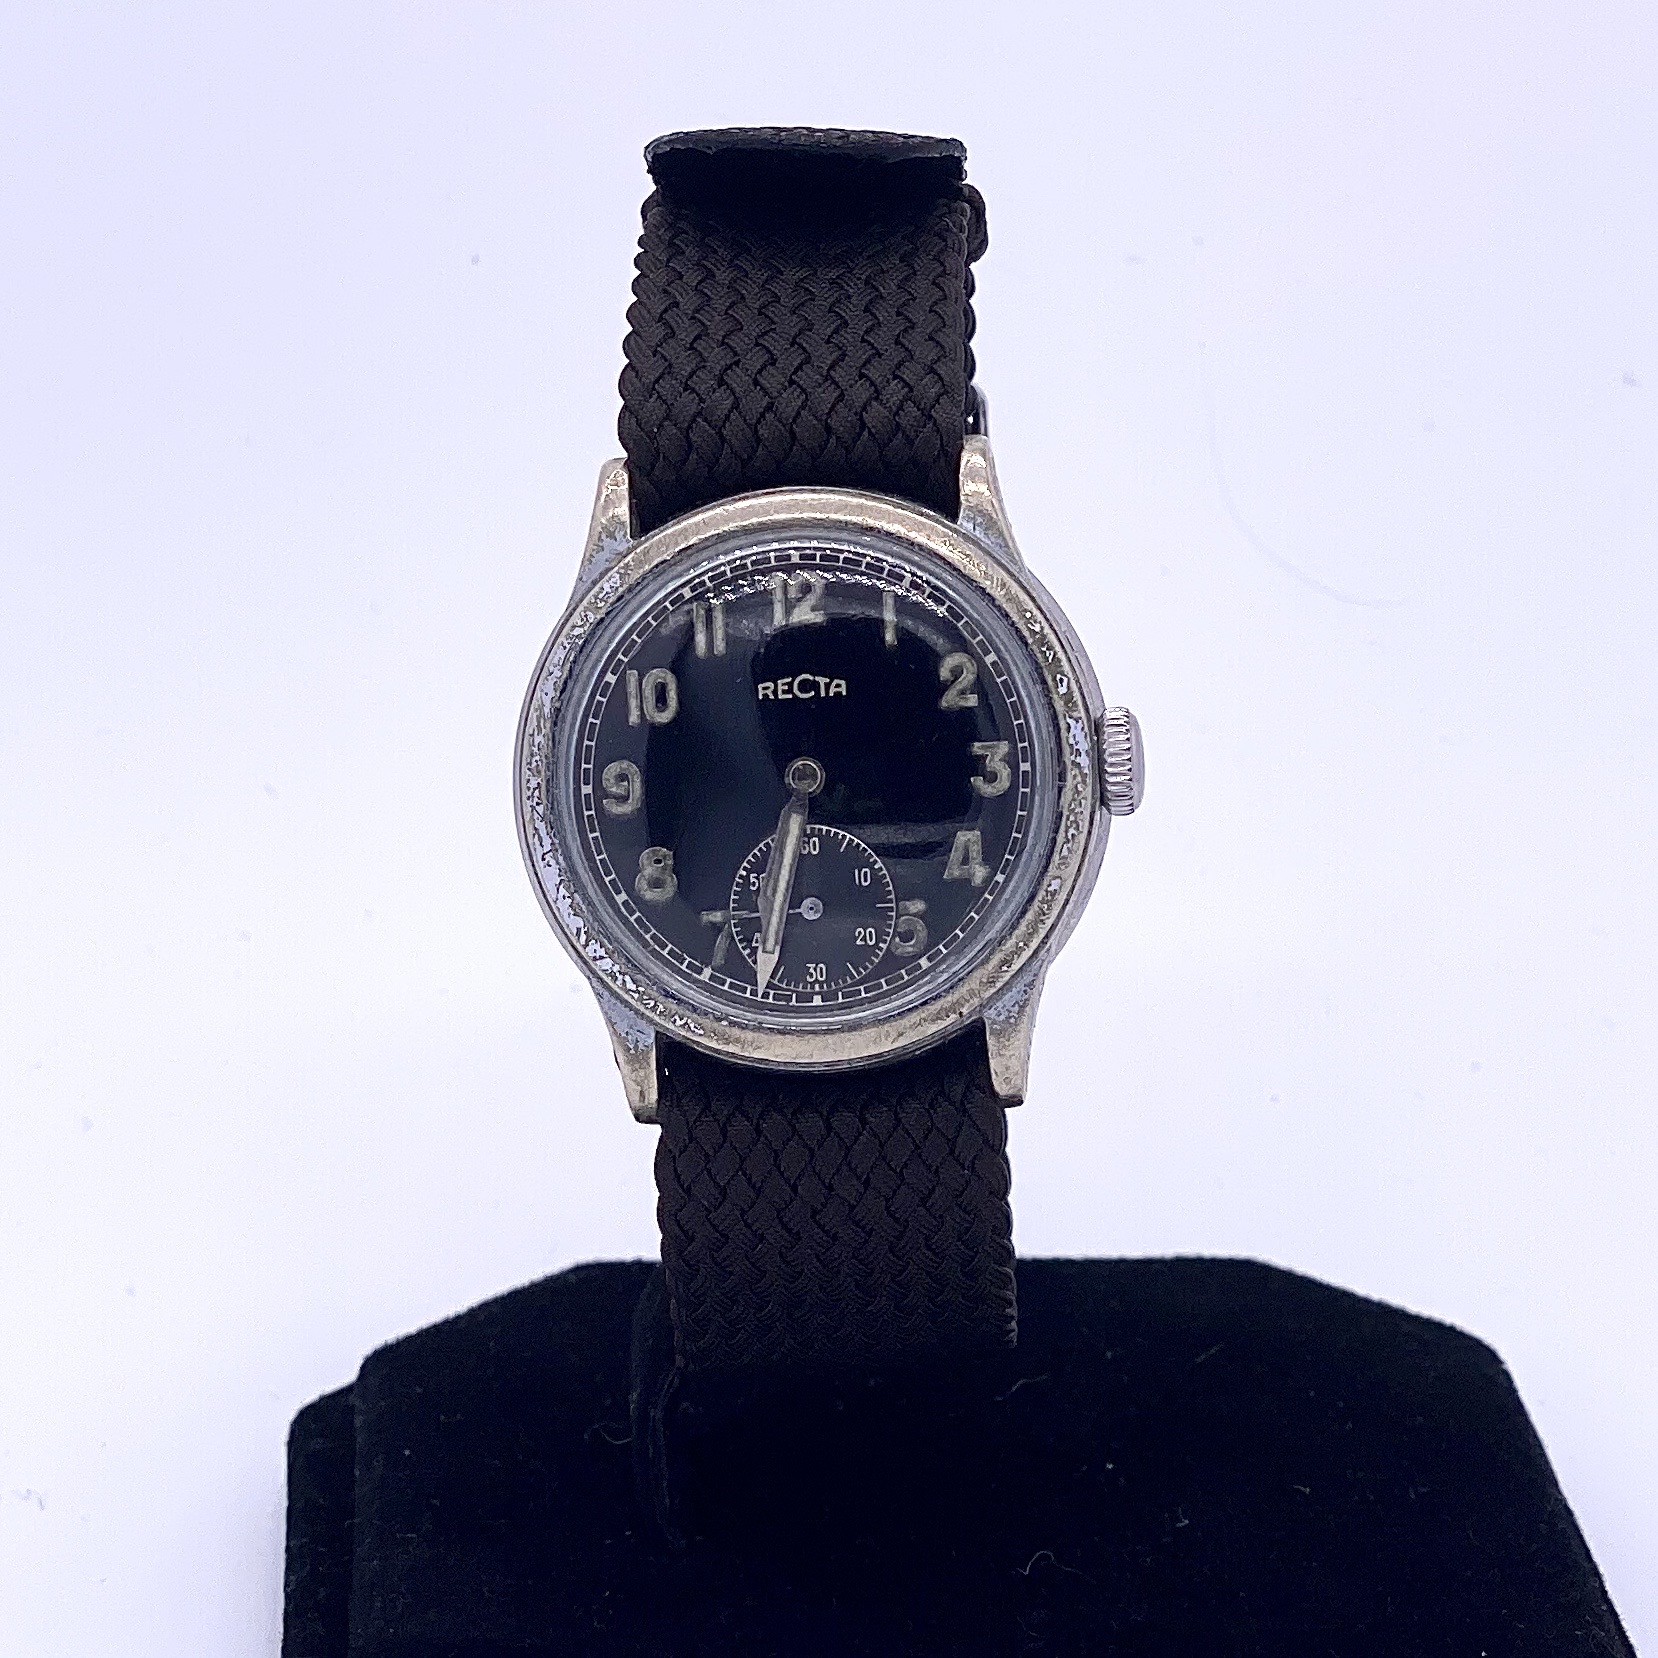 Lot 11 - Recta Military style watch